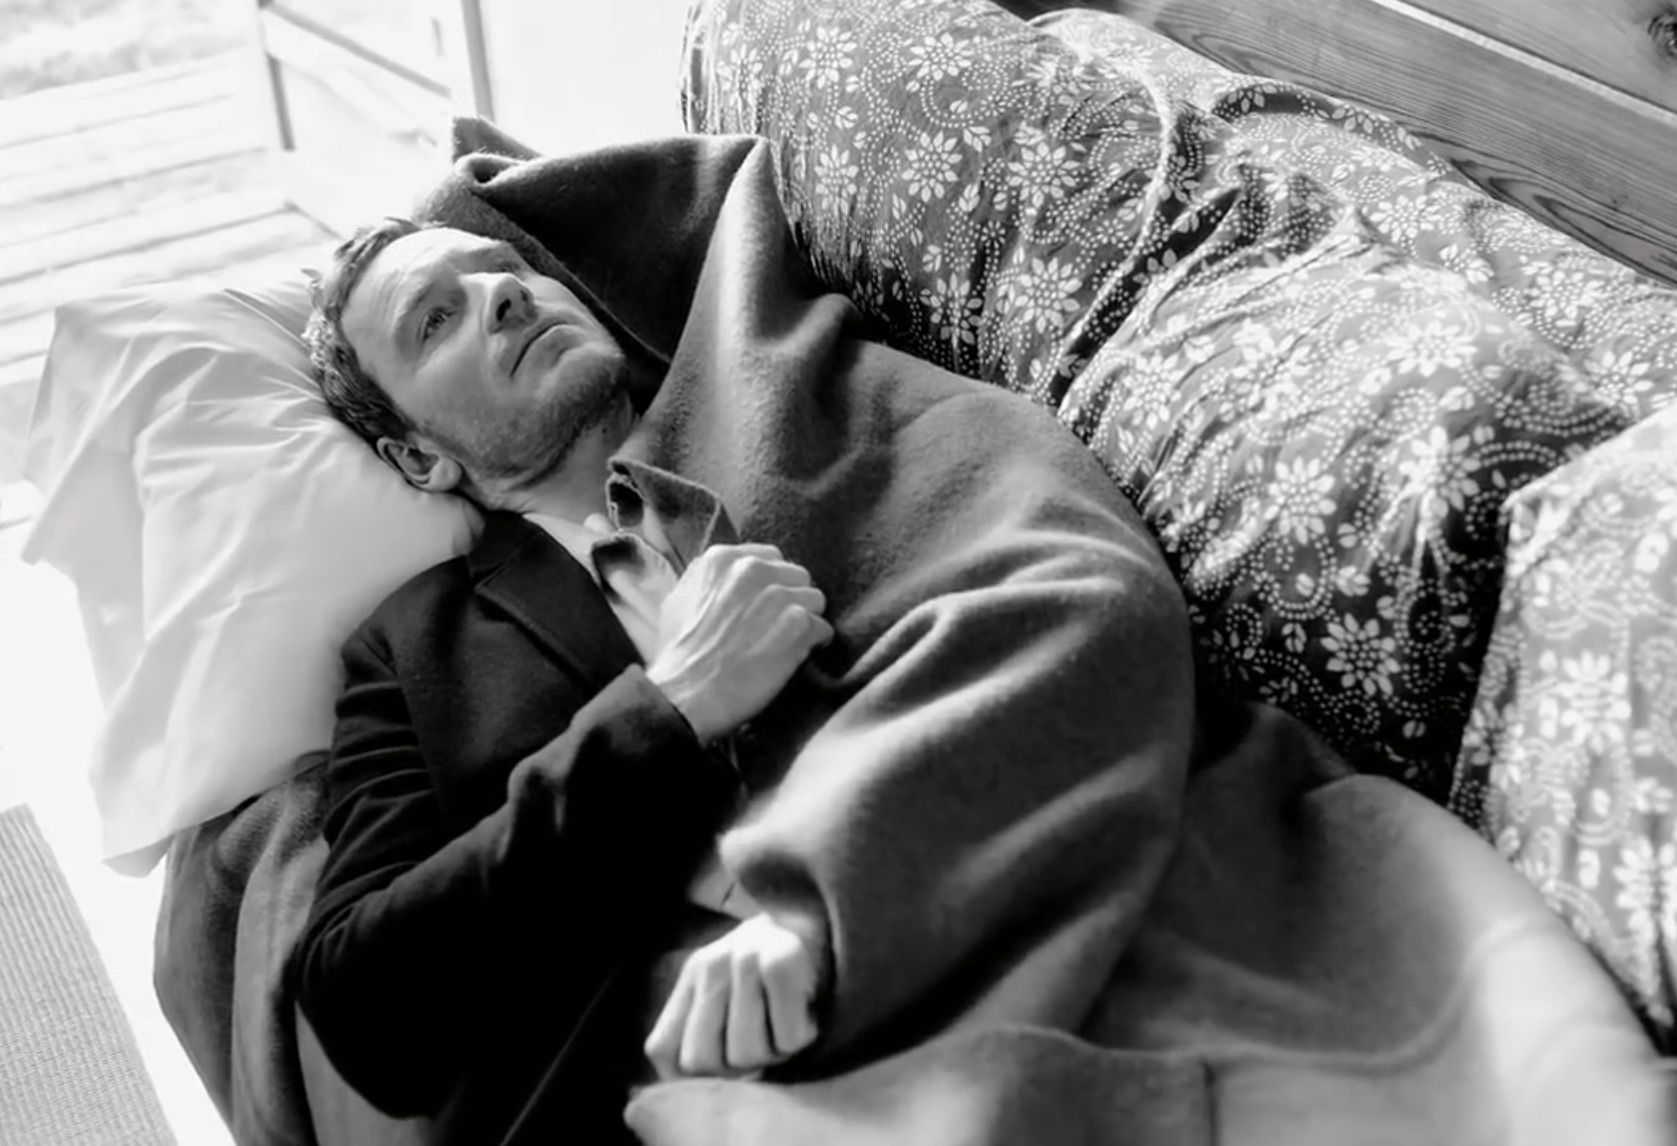 """From 'Four Photographic Sonatas' starring Michael Fassbender"""" by Bruce Weber 2015 -  coverstory of New York Times' T magazine."""